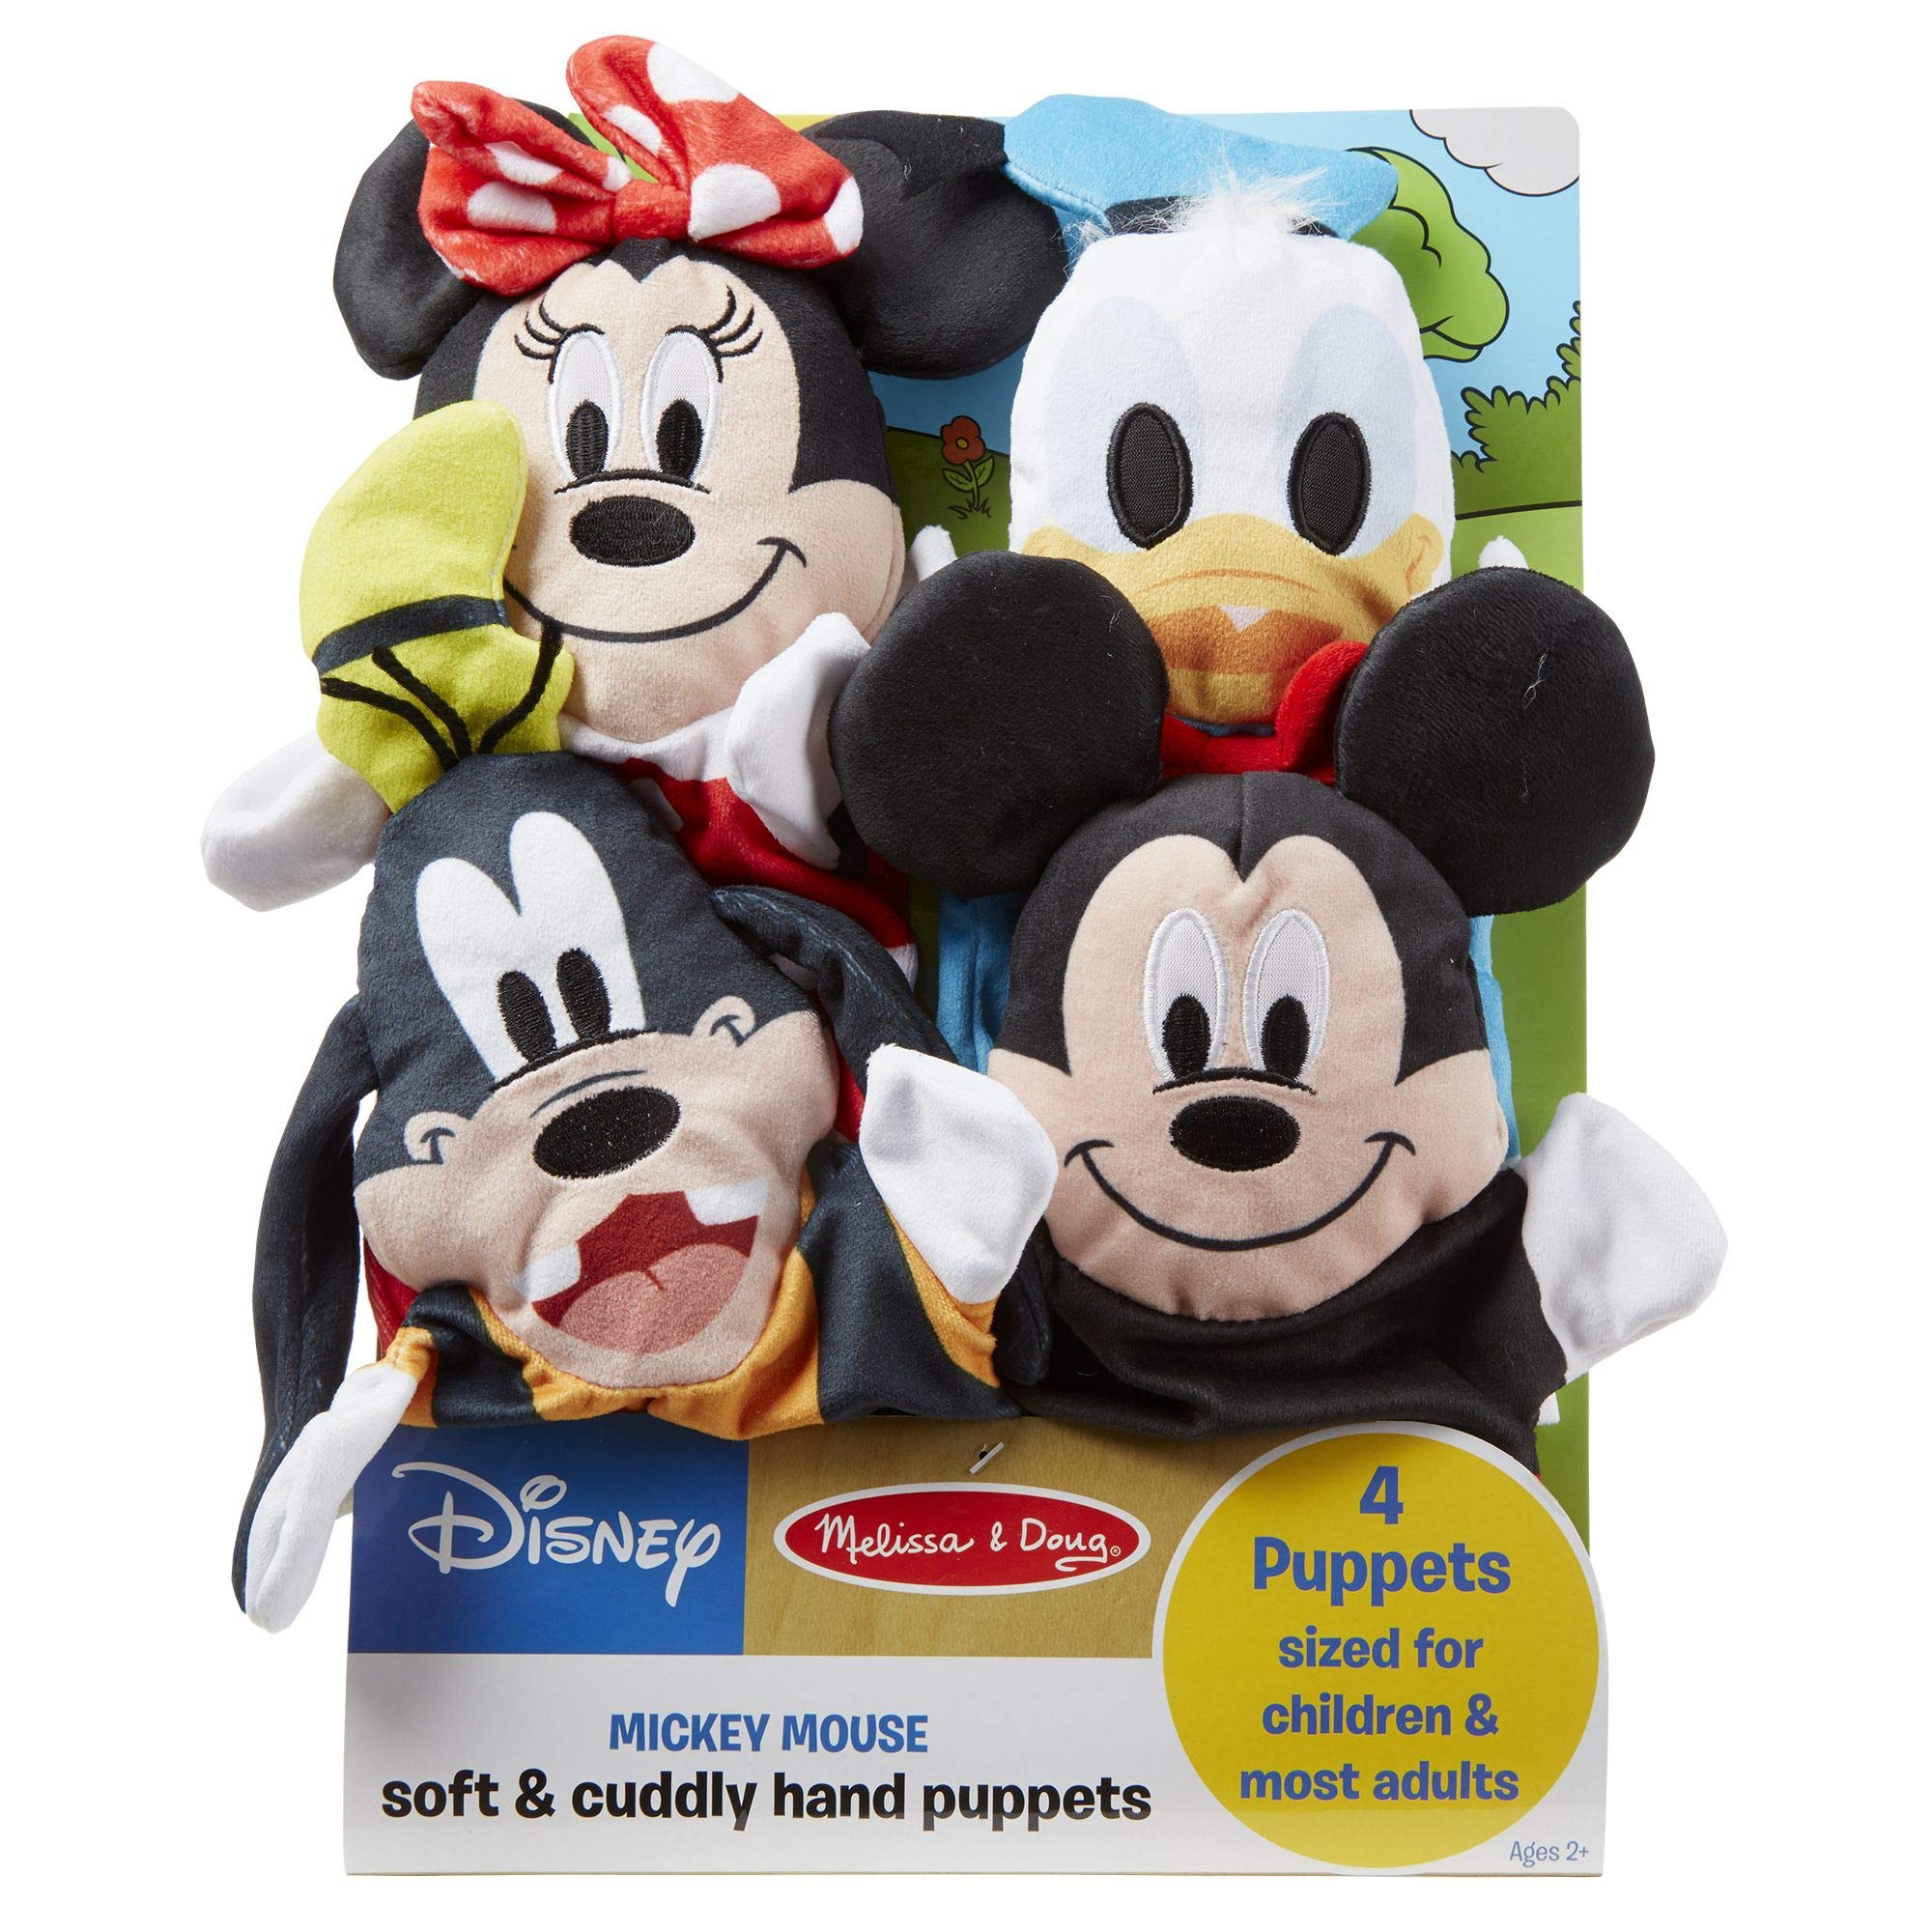 "Melissa & Doug Mickey Mouse & Friends Hand Puppets; Puppet Sets; Mickey, Minnie, Donald, and Goofy; Soft Plush Material; Set of 4; 9.5"" H x 14.2"" W x 2.1"" L by Melissa & Doug (Image #7)"